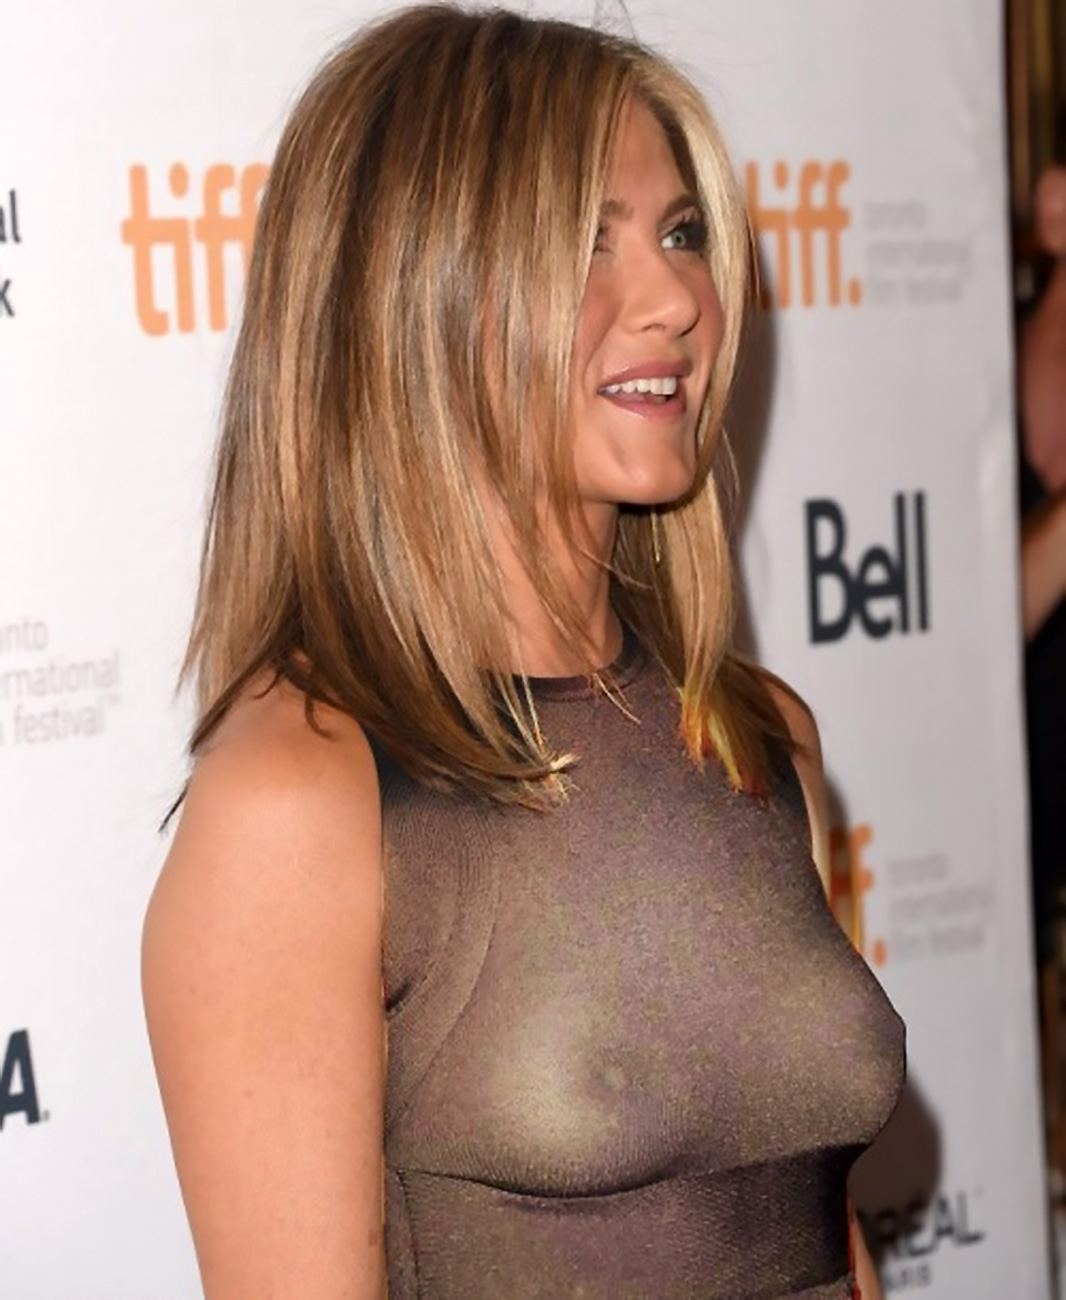 jennifer aniston breast pics